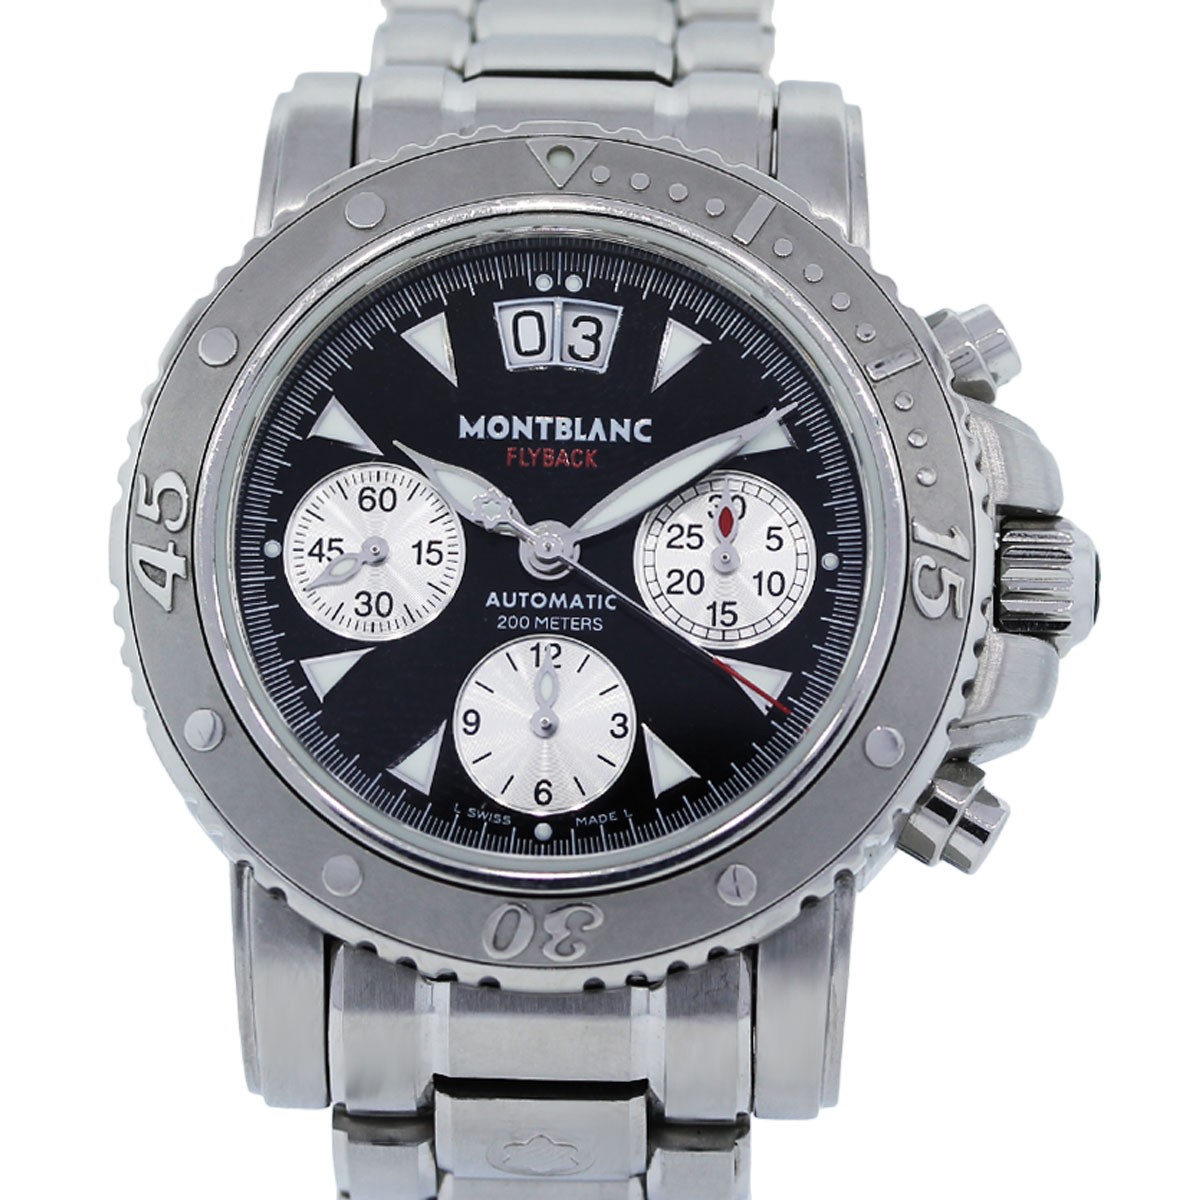 You are viewing this MontBlanc Flyback 7059 Stainless Steel Chronograph Watch!